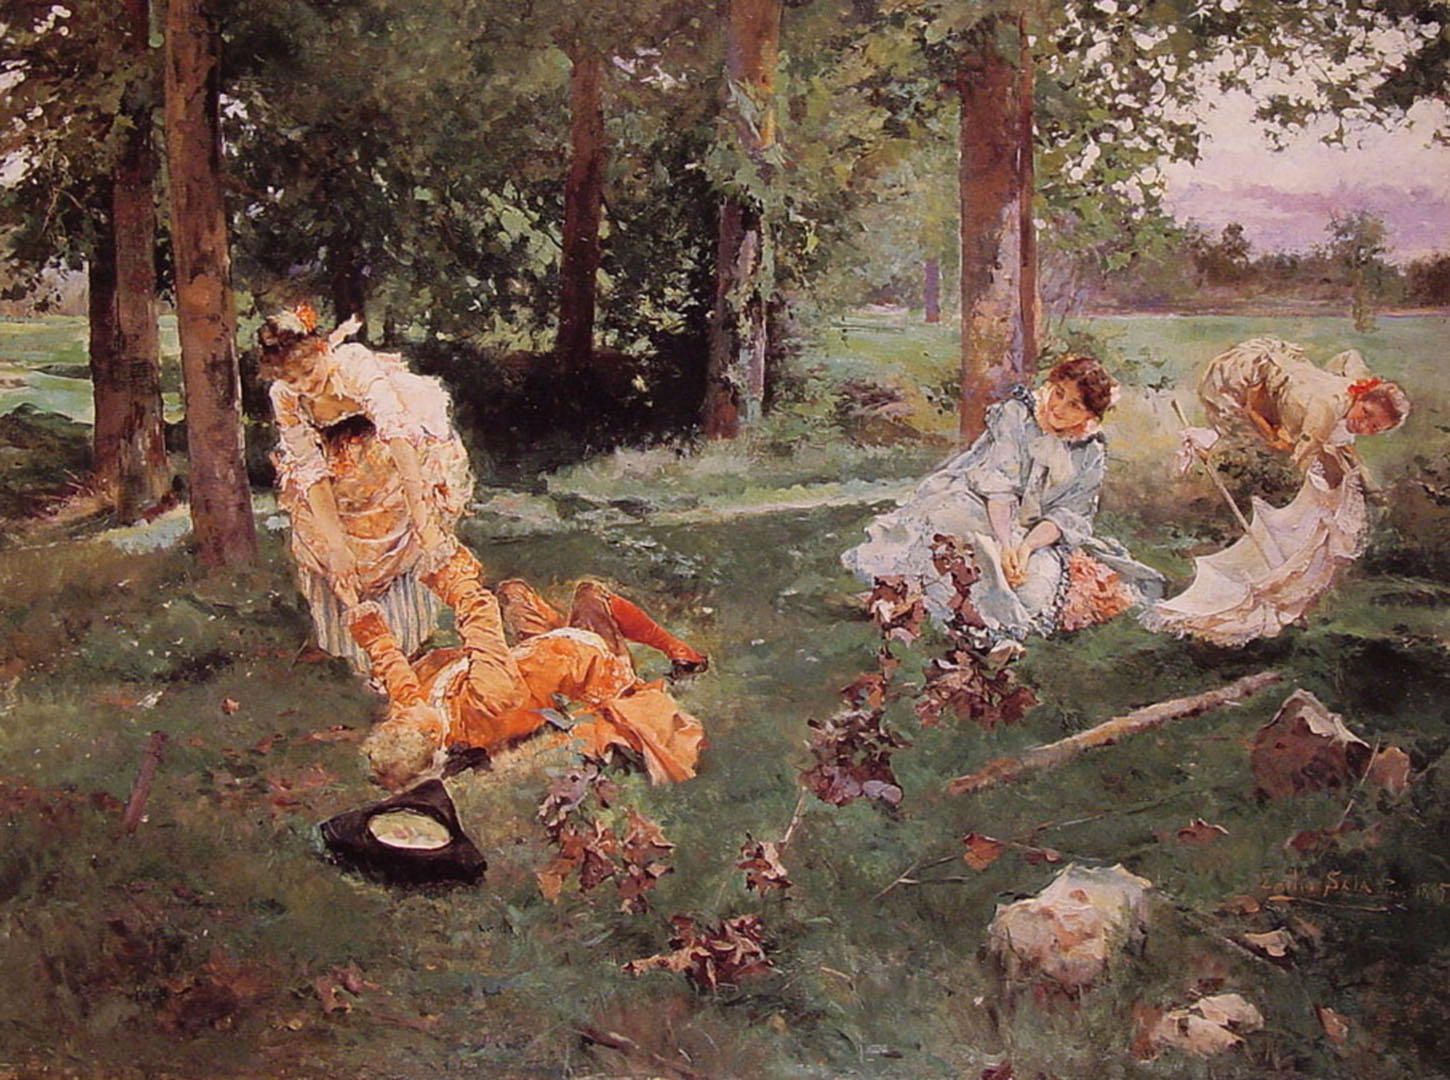 Elegant Figures In A Summer Garden